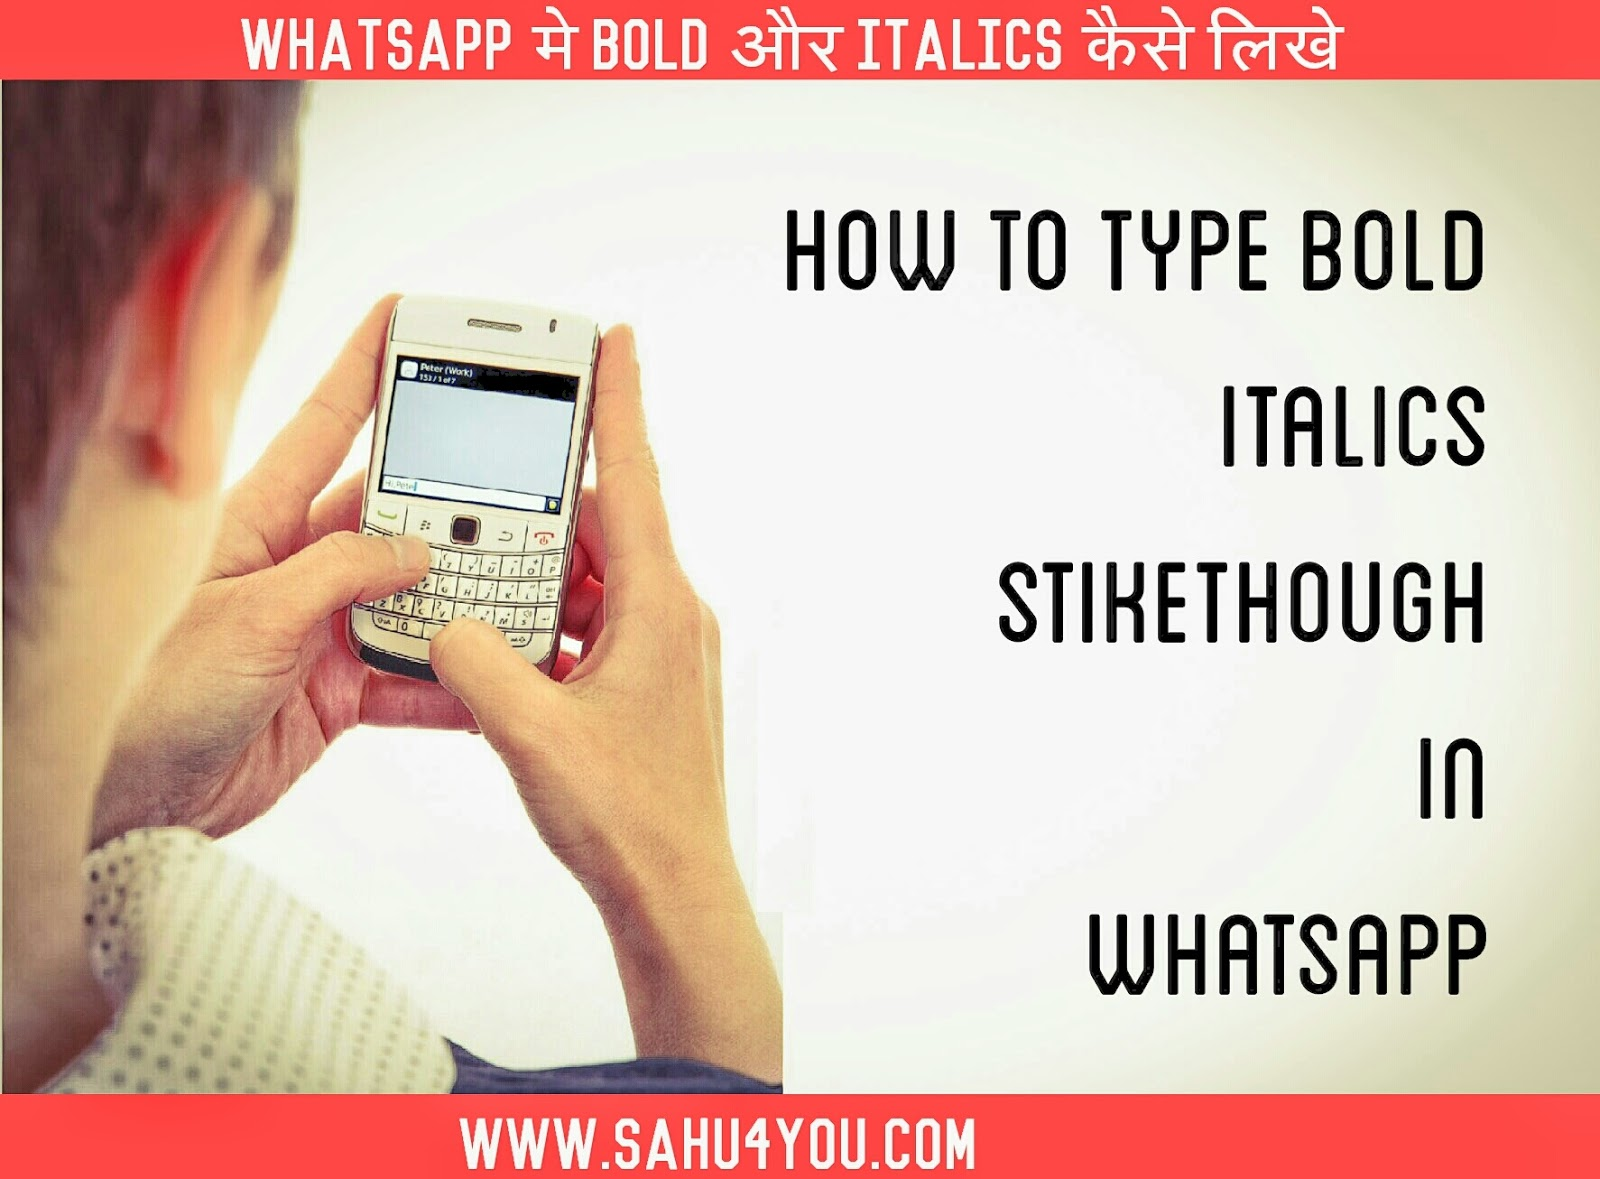 WhatsApp Me Bold, Italic, Strikethrough Message Kaise Send Kare